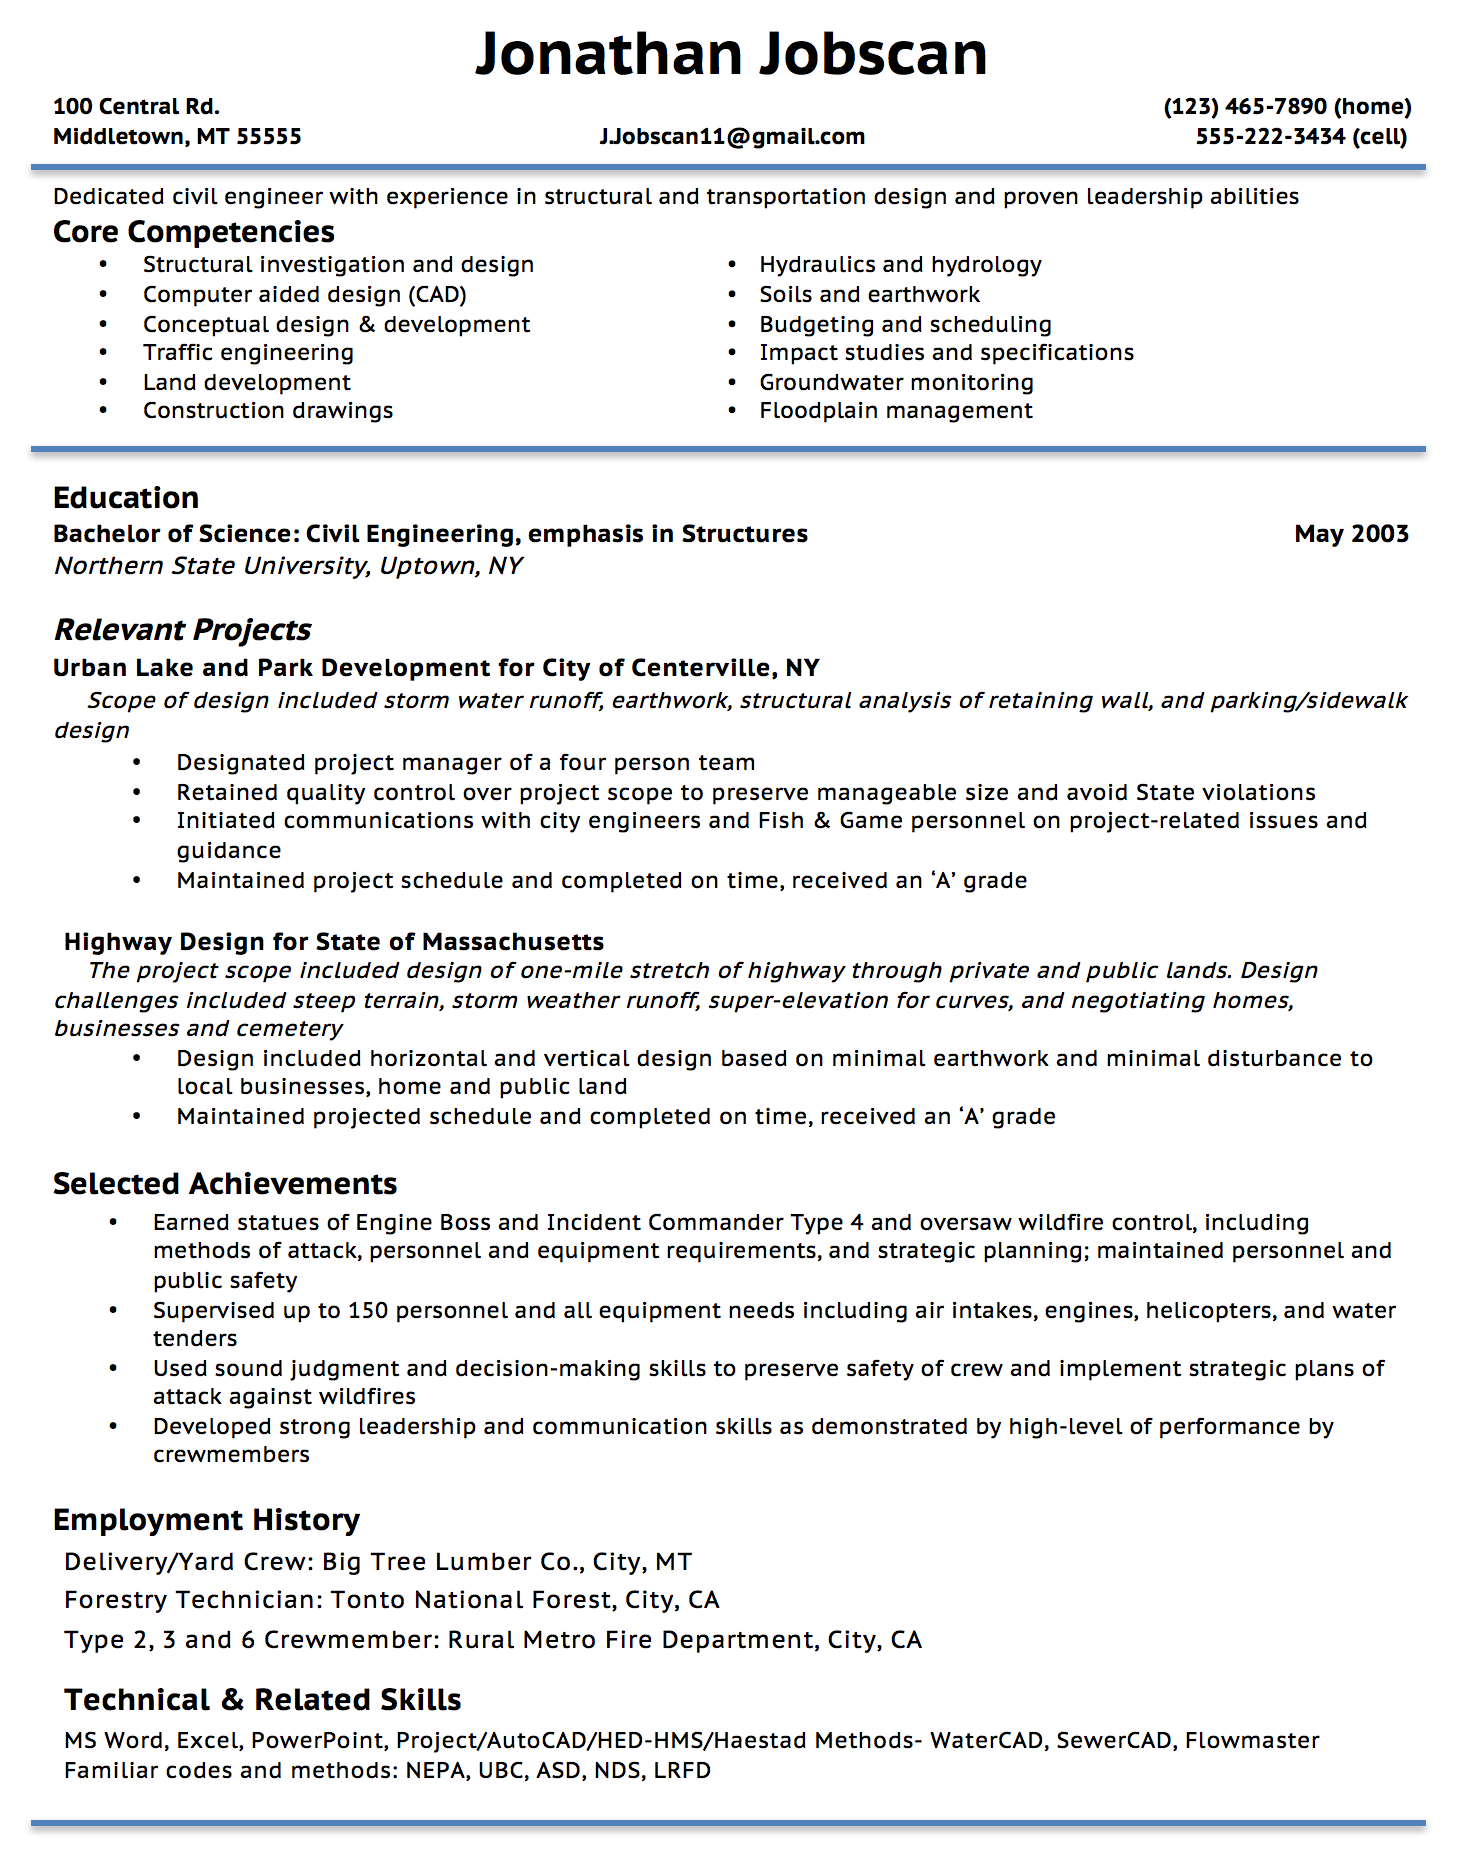 Opposenewapstandardsus  Picturesque Resume Writing Guide  Jobscan With Extraordinary Example Of A Functional Resume Format With Easy On The Eye What Are Resumes Also Professional Server Resume In Addition Biotechnology Resume And Current College Student Resume Examples As Well As Resume Objective Vs Summary Additionally Clerical Resumes From Jobscanco With Opposenewapstandardsus  Extraordinary Resume Writing Guide  Jobscan With Easy On The Eye Example Of A Functional Resume Format And Picturesque What Are Resumes Also Professional Server Resume In Addition Biotechnology Resume From Jobscanco